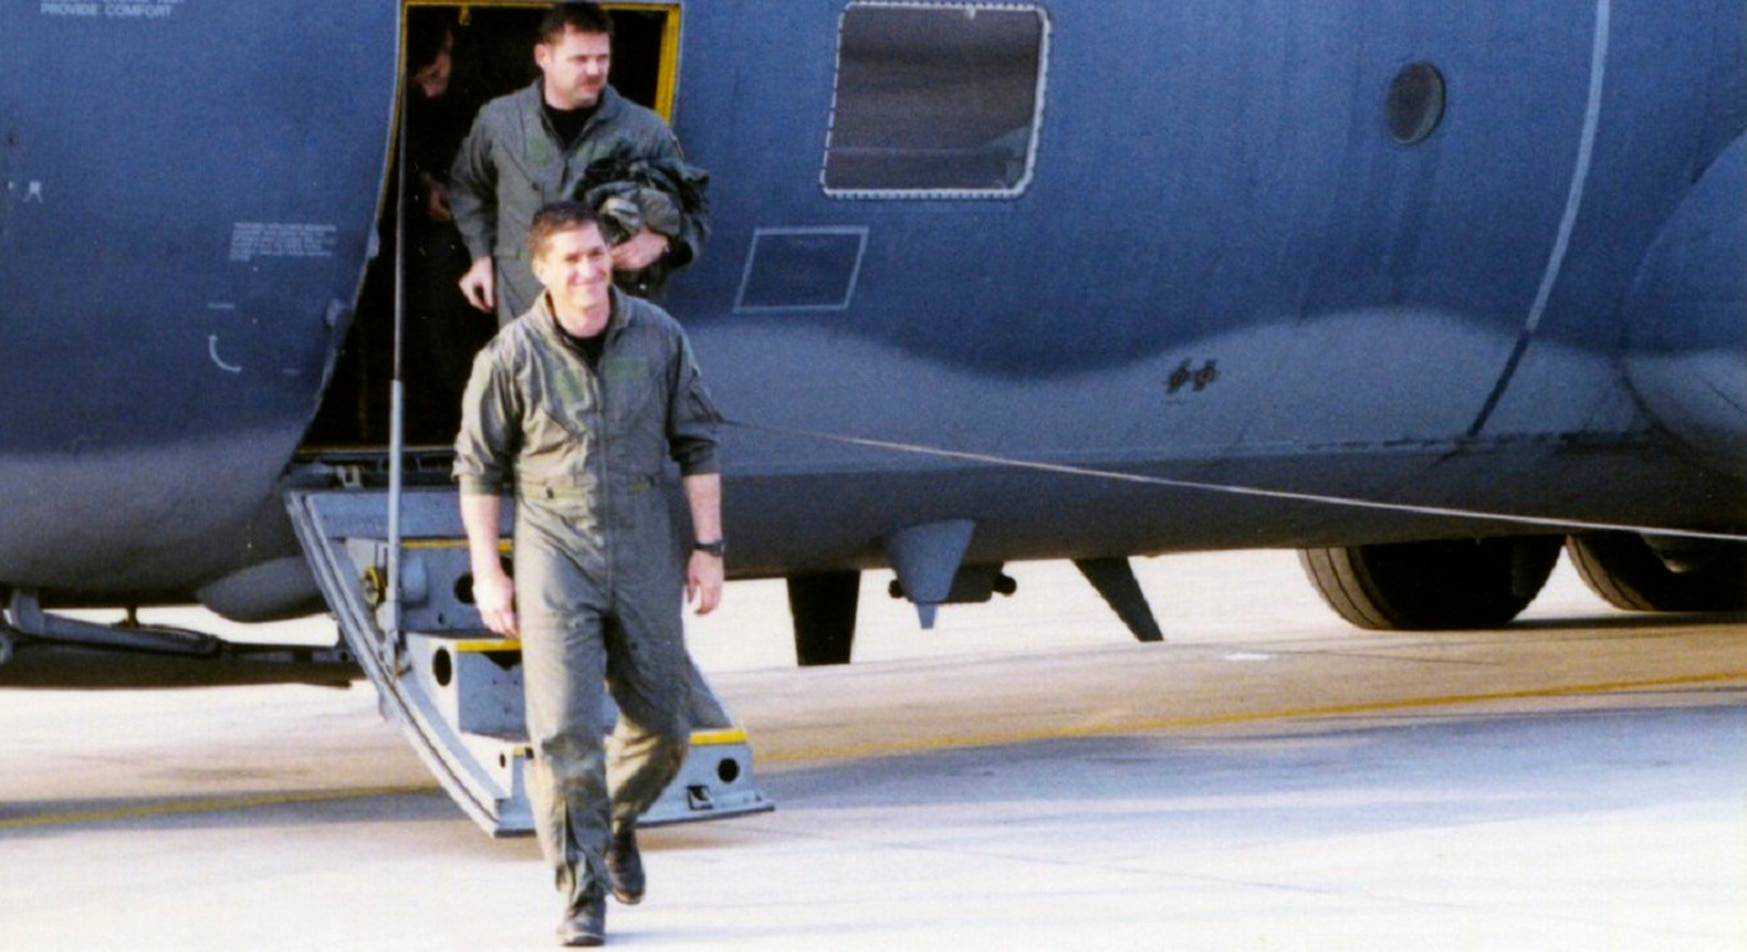 Lt. Col. Dave Goldfein, commander of the 555th Fighter Squadron, emerges on the apron at Aviano Air Base following his rescue in Serbia in May 1999. (Air Force)